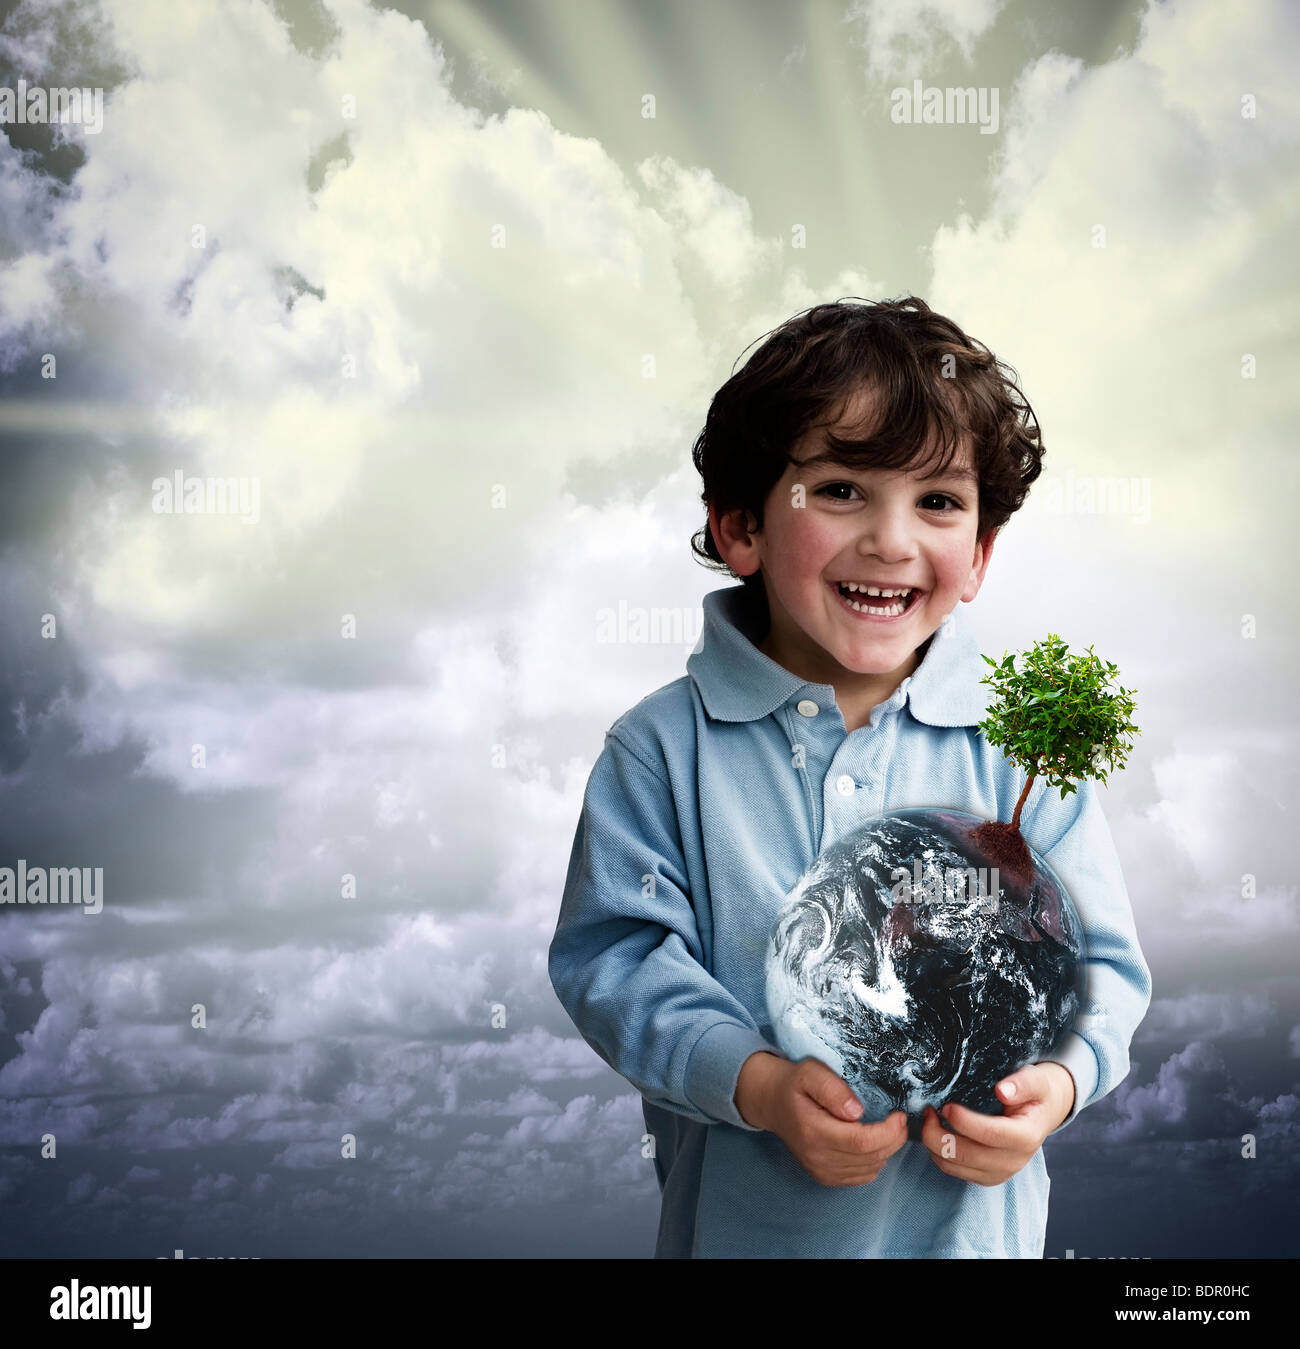 young boy holding the globe with a tree on it - Stock Image